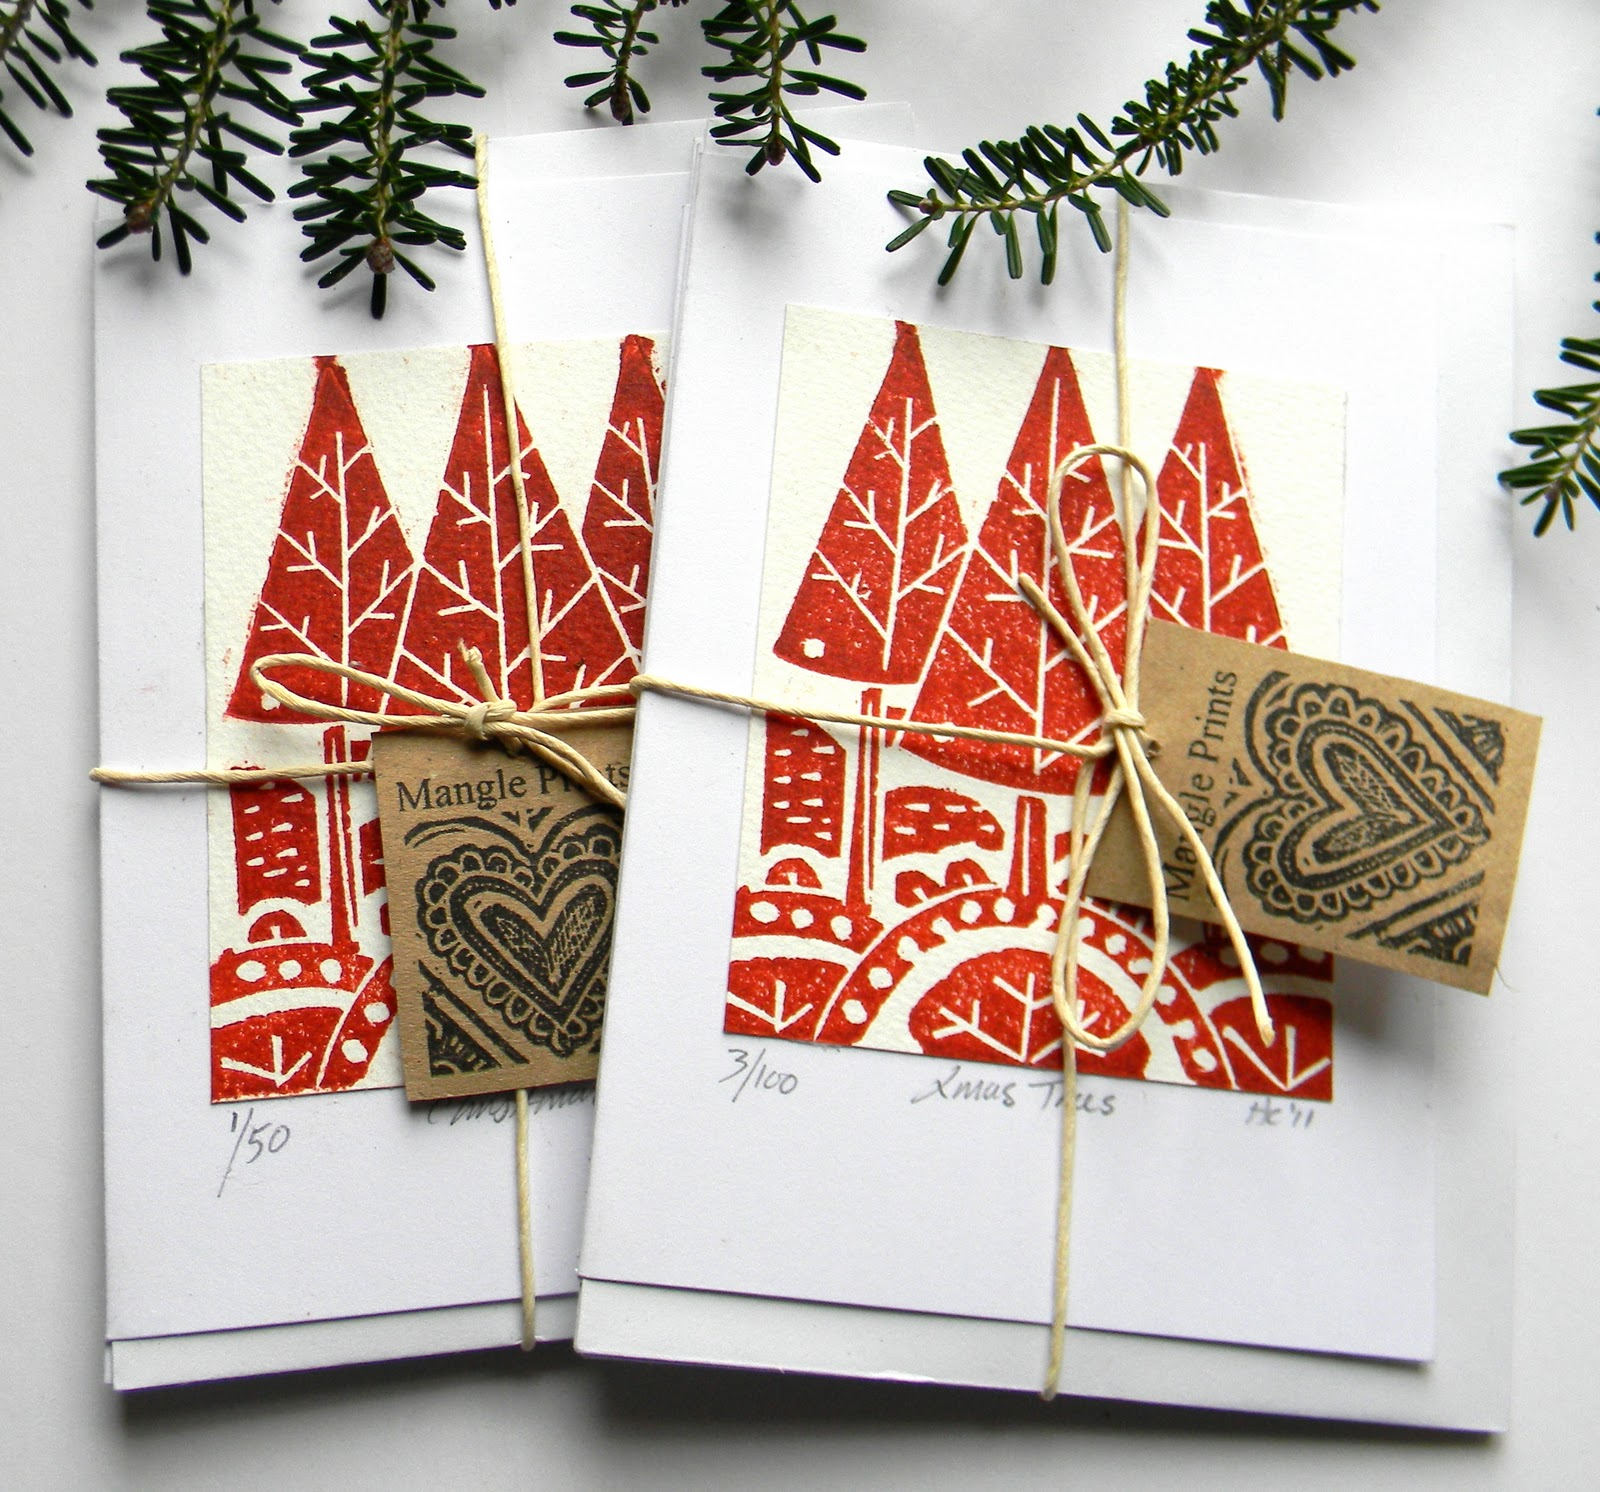 Mangle Prints Christmas Cards And Heat